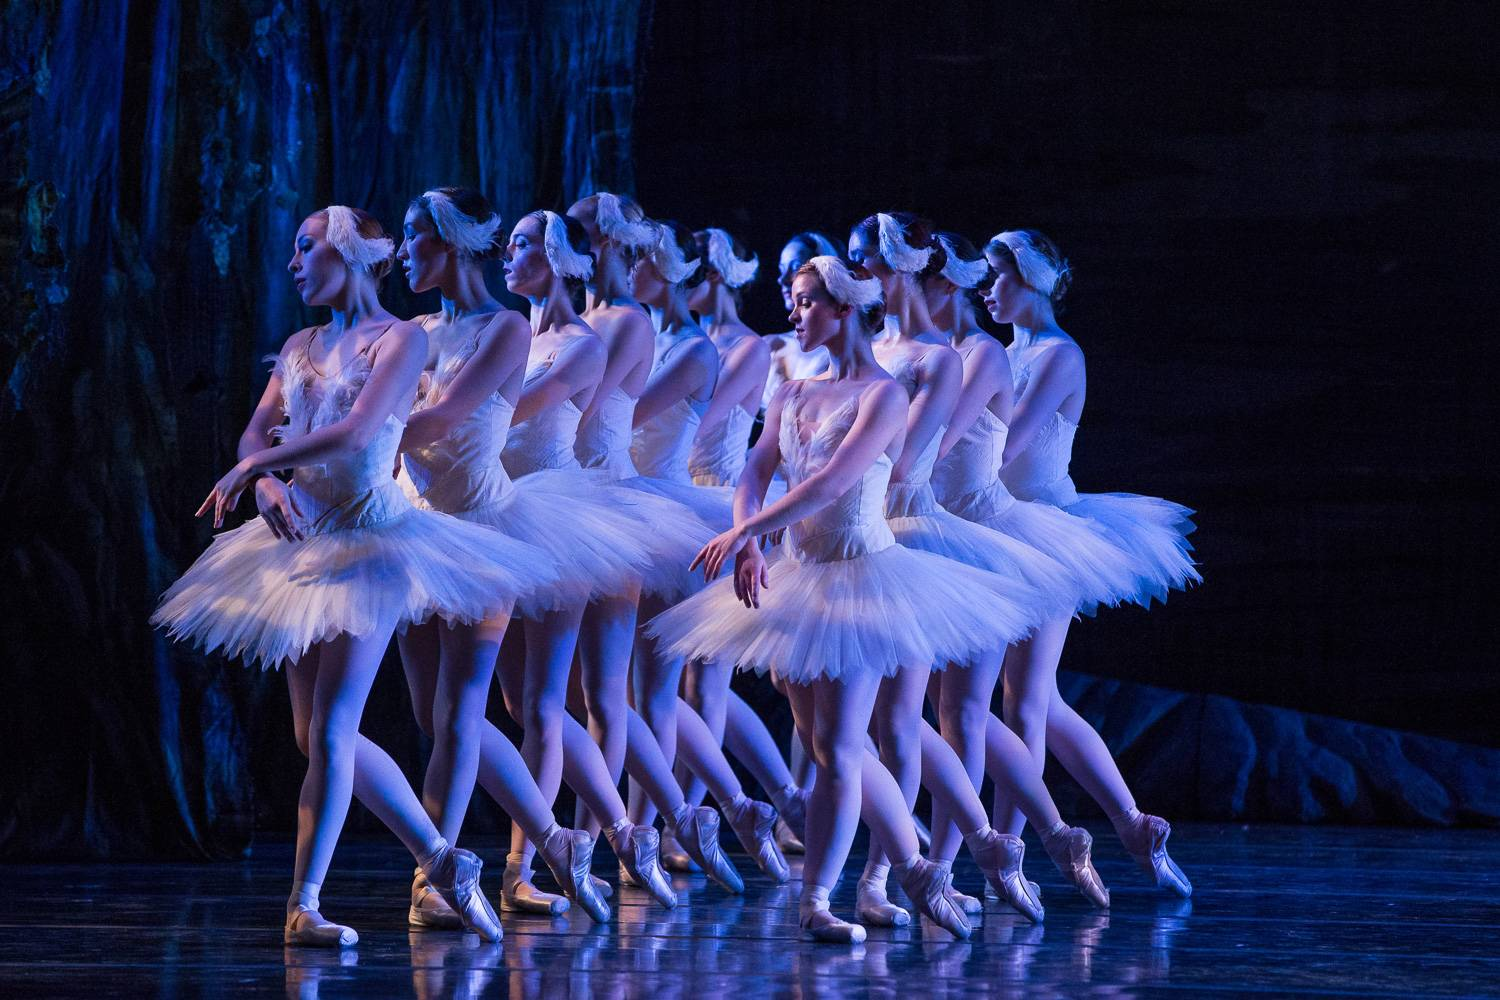 Image of ballet dancers in a production of Swan Lake.